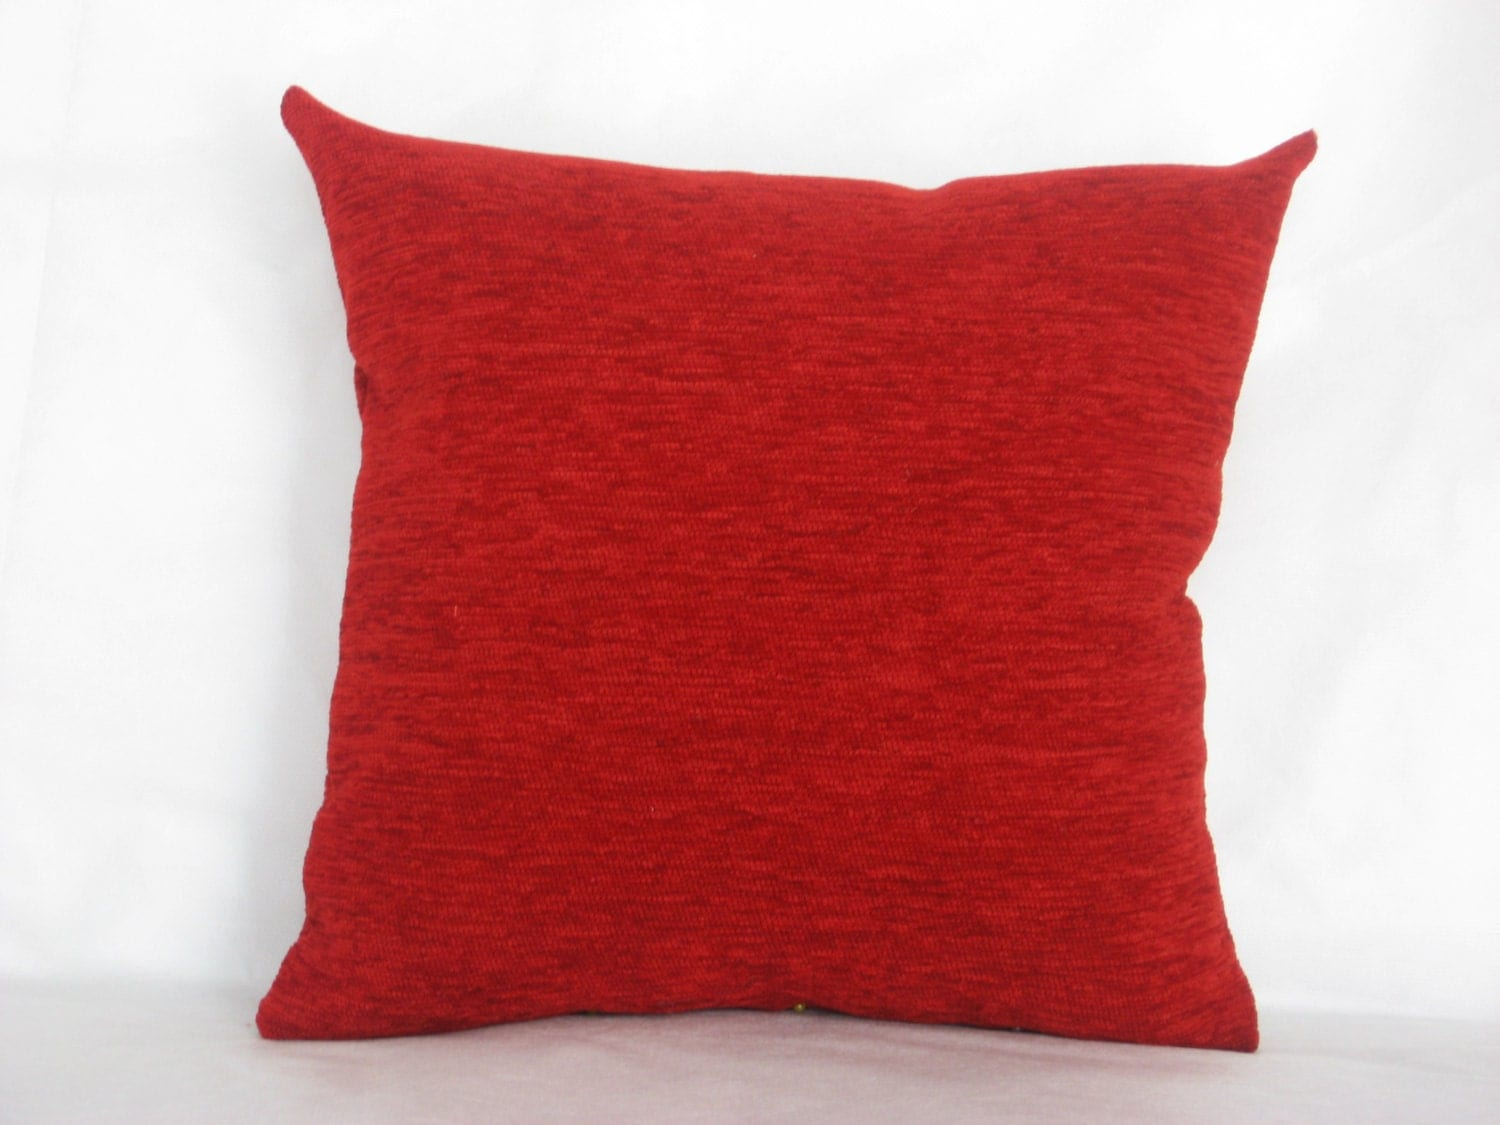 Throw Pillows Lowes : Red chenille luxury handmade throw pillow pillow